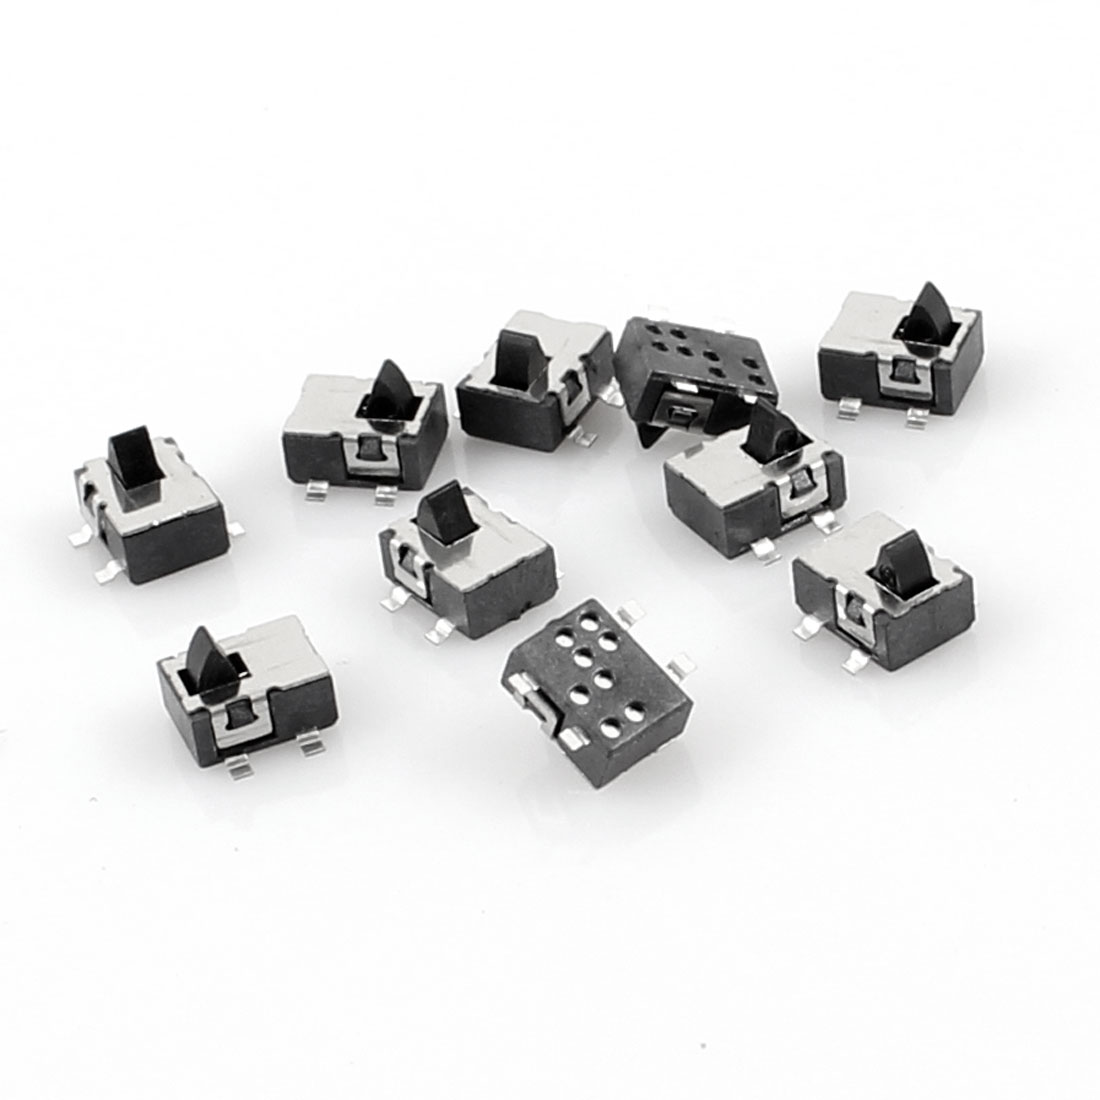 10 Pcs 4.8x3.8mm 4 Pin SPST Momentary Mini SMD SMT Tactile Tact Switch